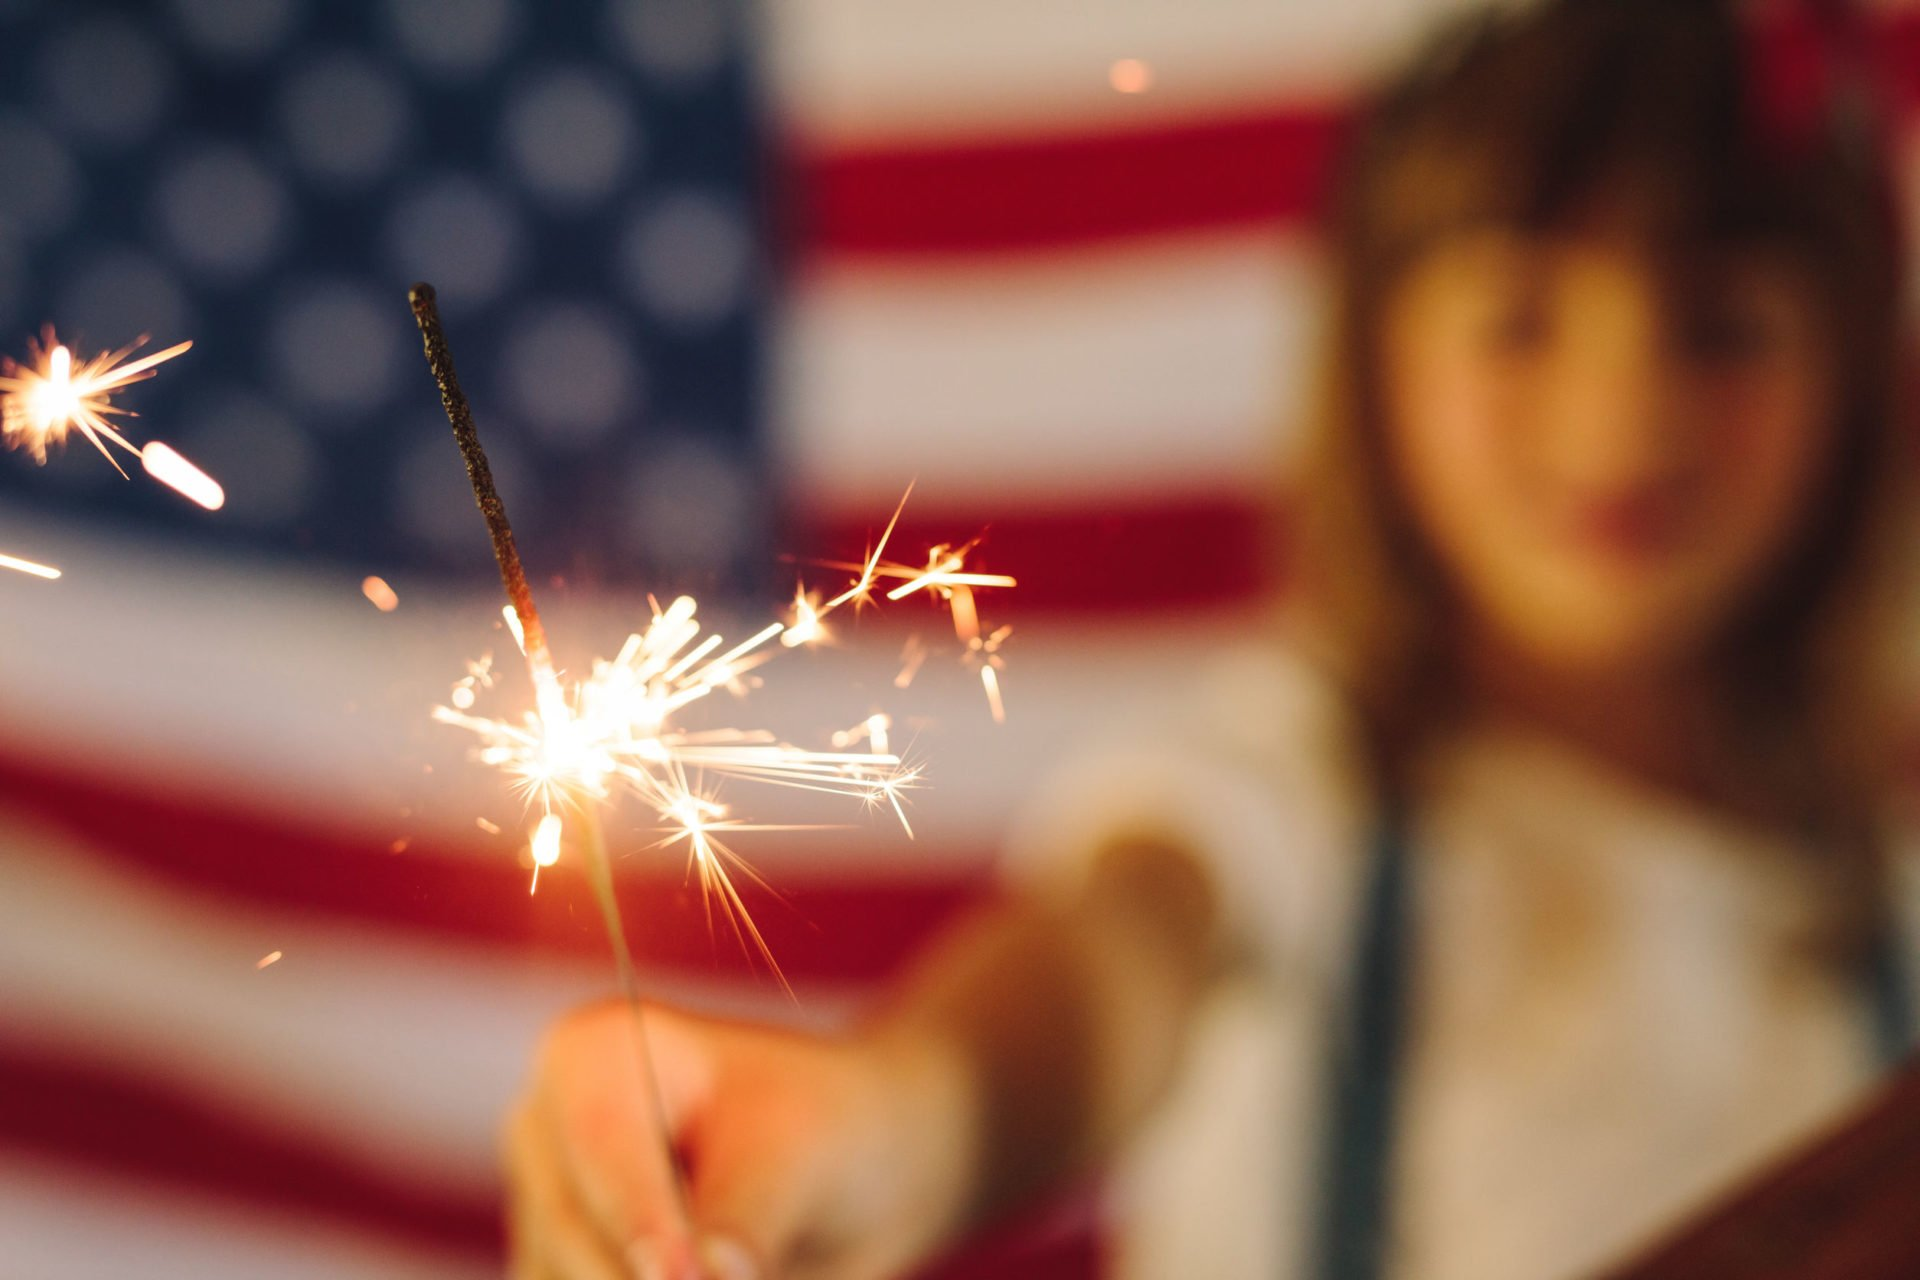 Fireworks Injuries: The Many Different Ways You Can Get Hurt